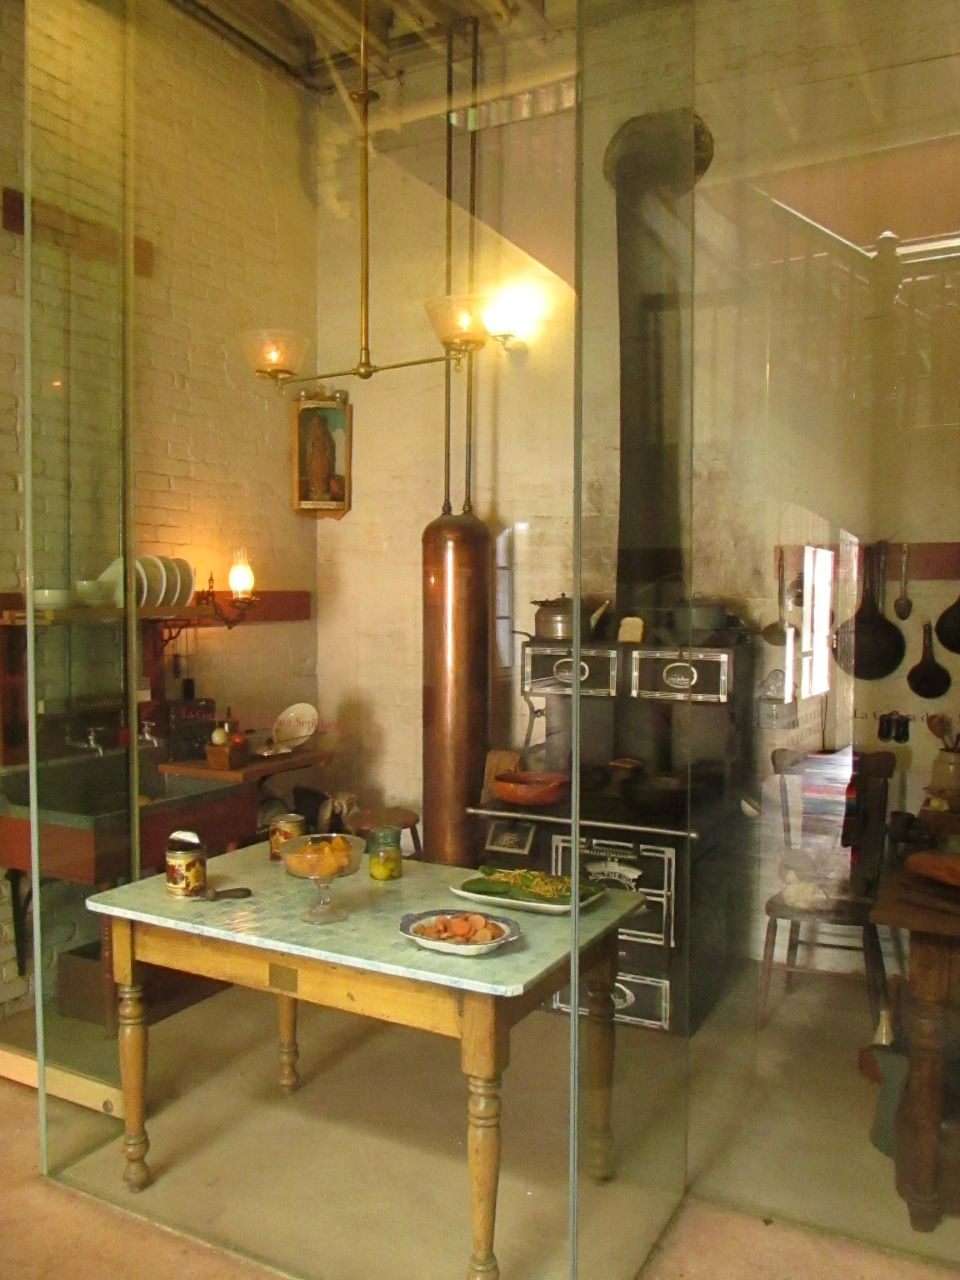 The kitchen of Sepulveda House